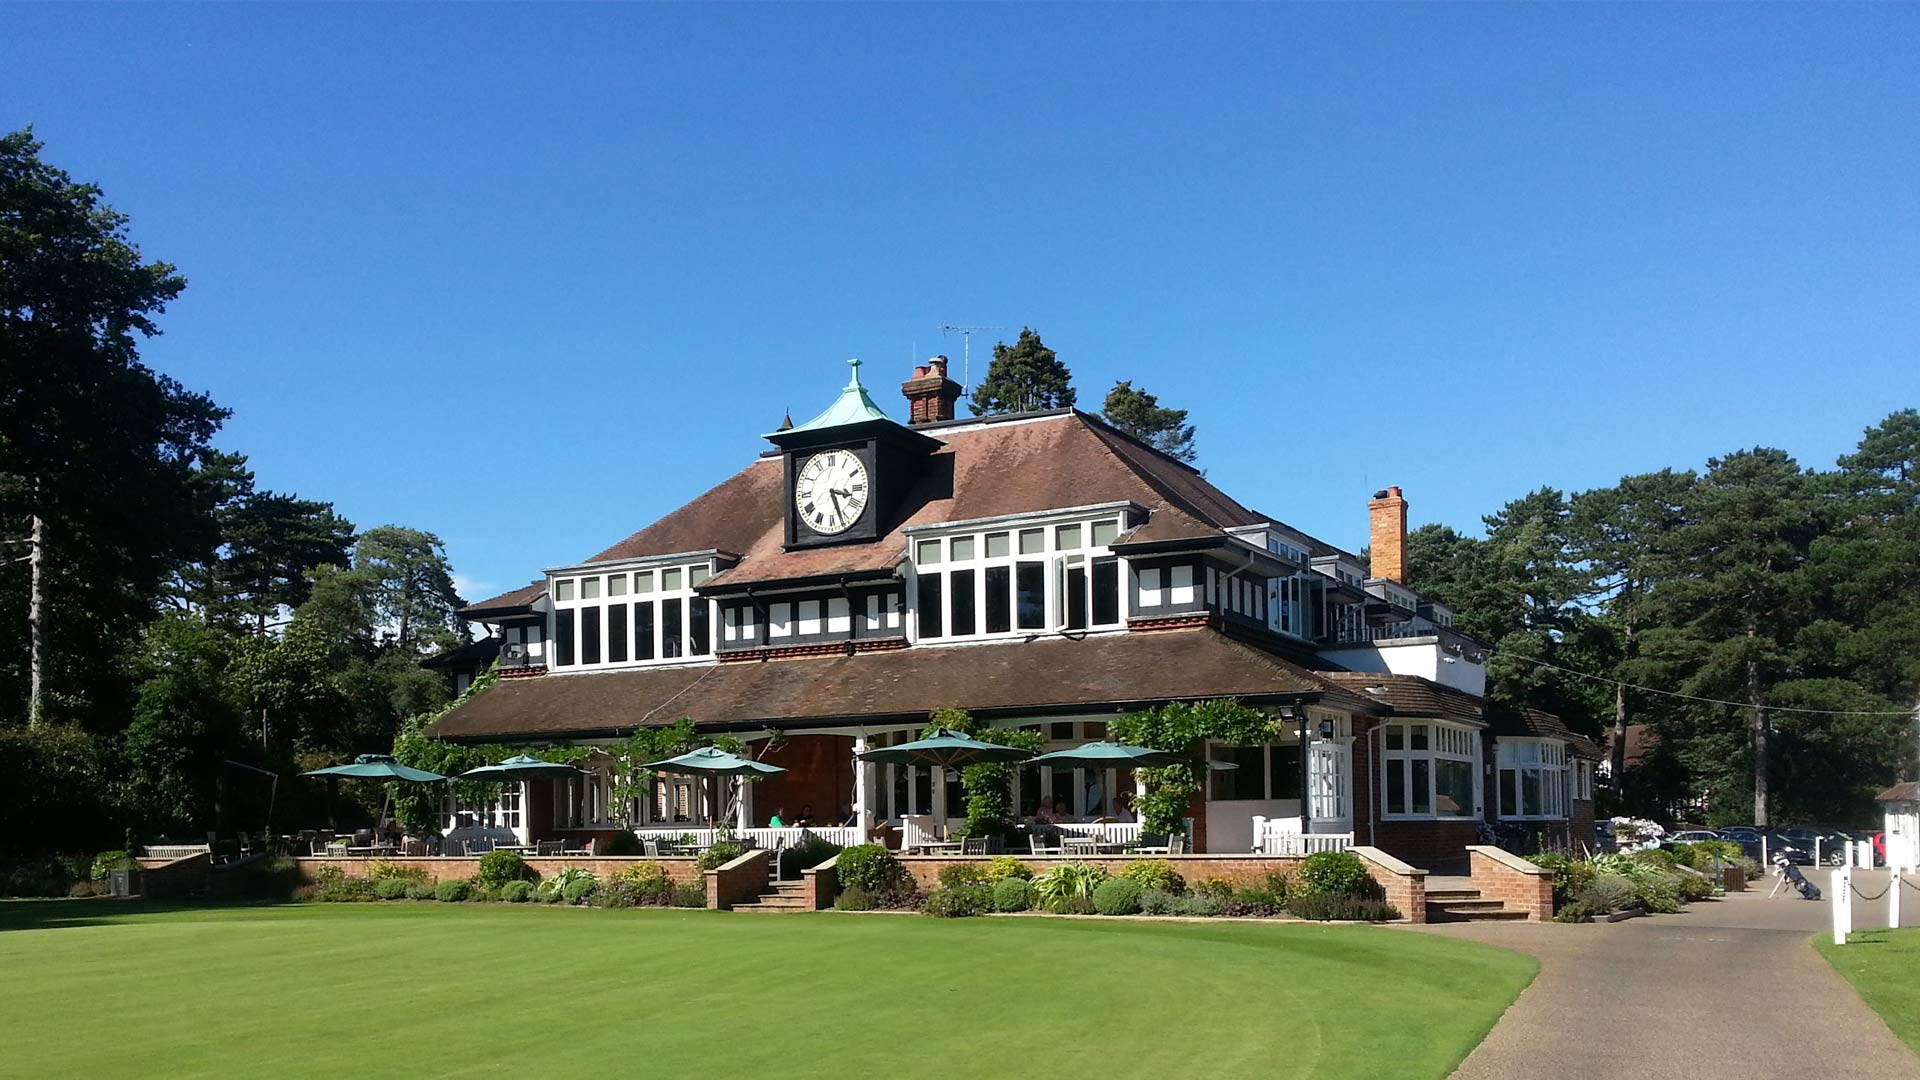 Sunningdale Golf Terrace commercial architecture